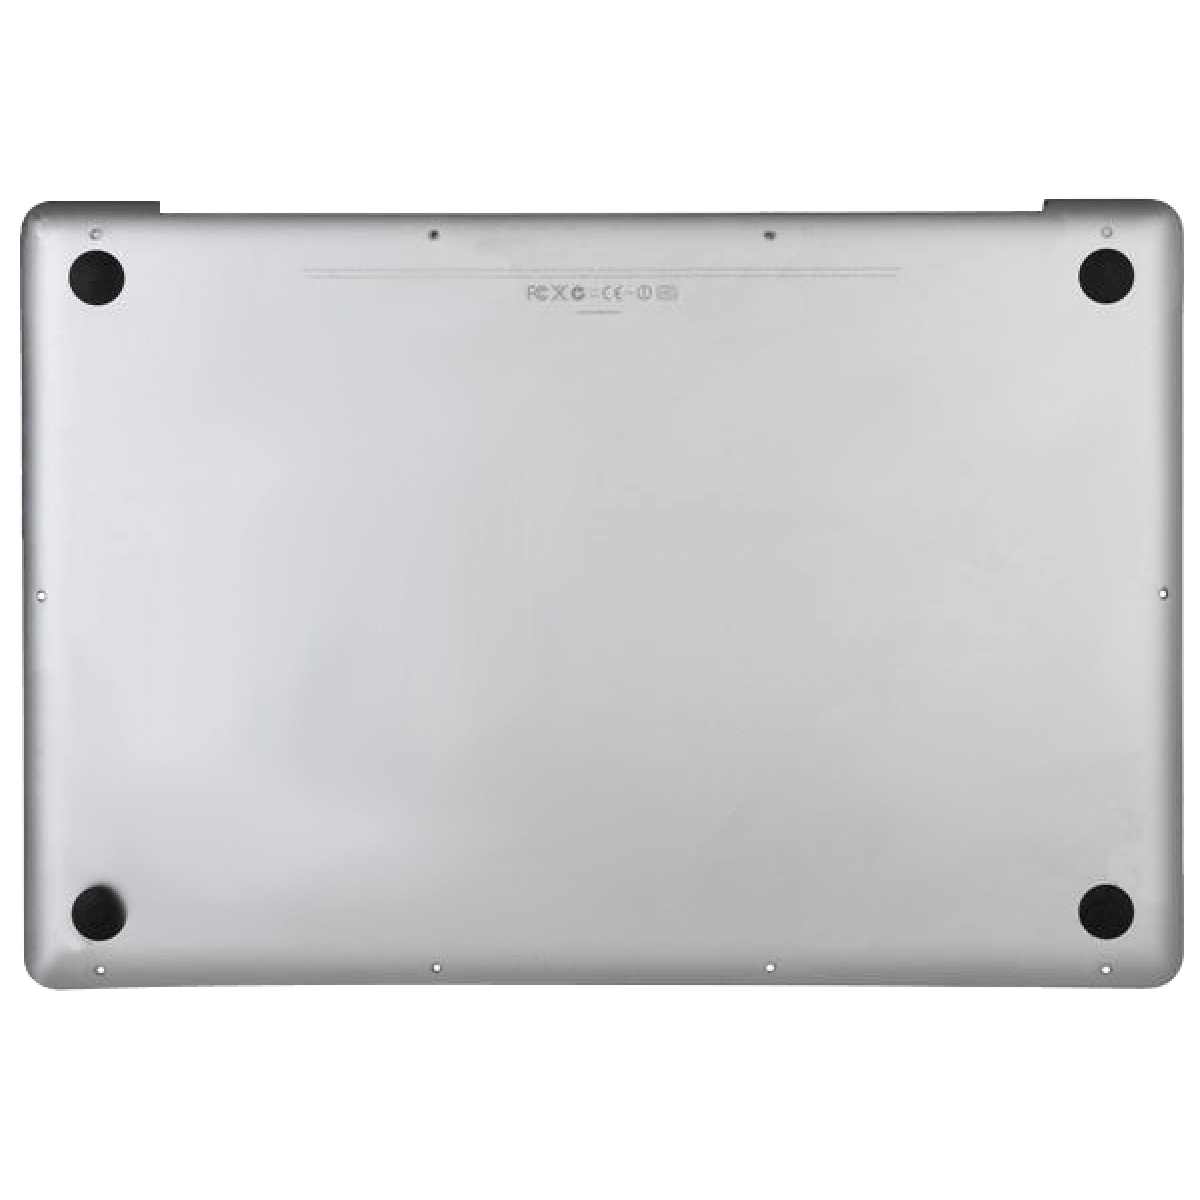 promo code 51b38 9545e Bottom Case Cover for Apple MacBook Pro 17 inch A1297 Early 2009, A1297 Mid  2009, A1297 Mid 2010, A1297 Early 2011, A1297 Late 2011